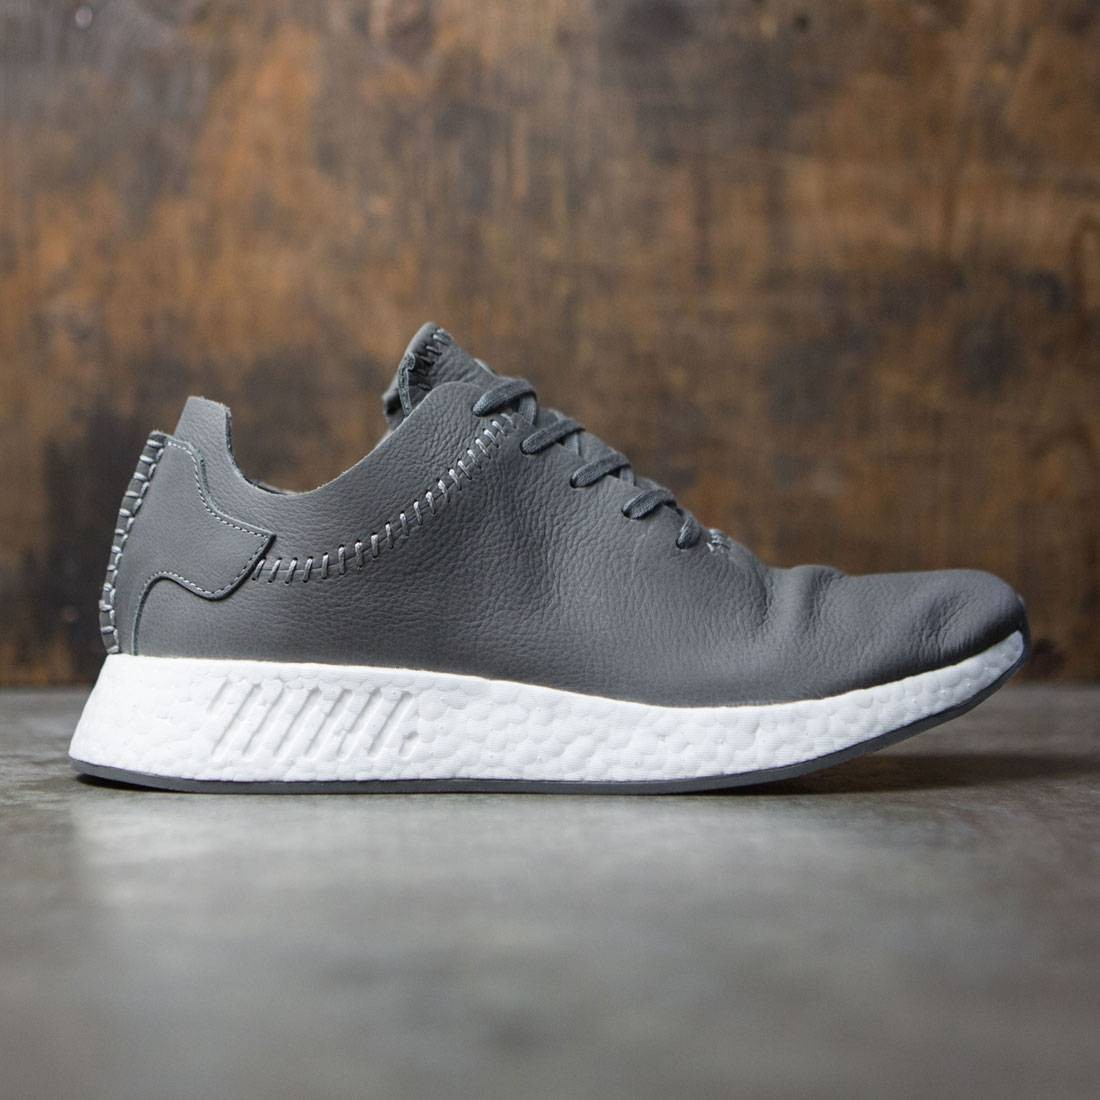 3294b5e7e Adidas x Wings + Horns Men NMD R2 Leather gray ash off white